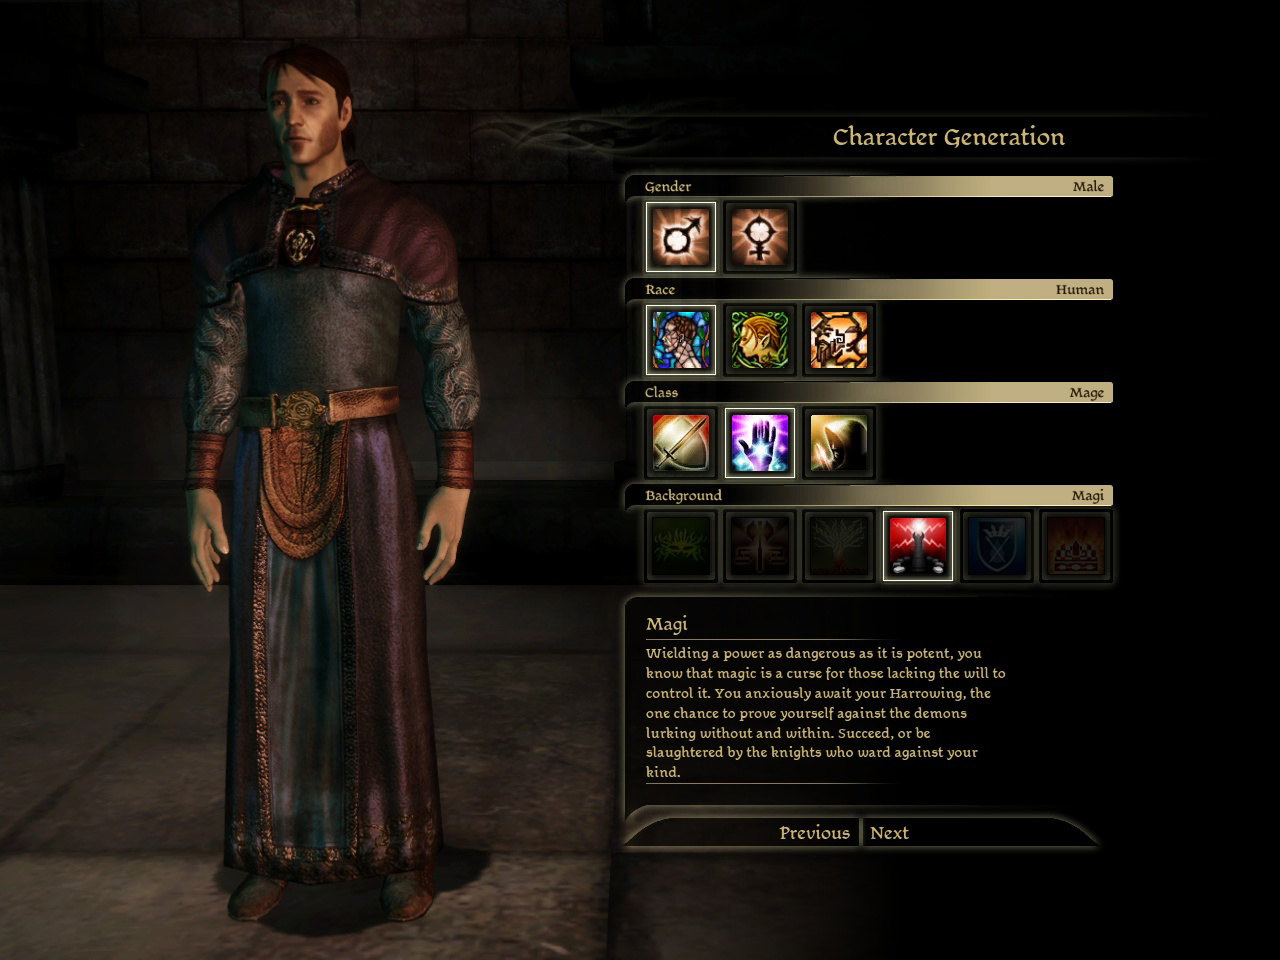 Character origins gets determined by these choices, which then impacts what happens to the player-character, and therefore shapes their personality.